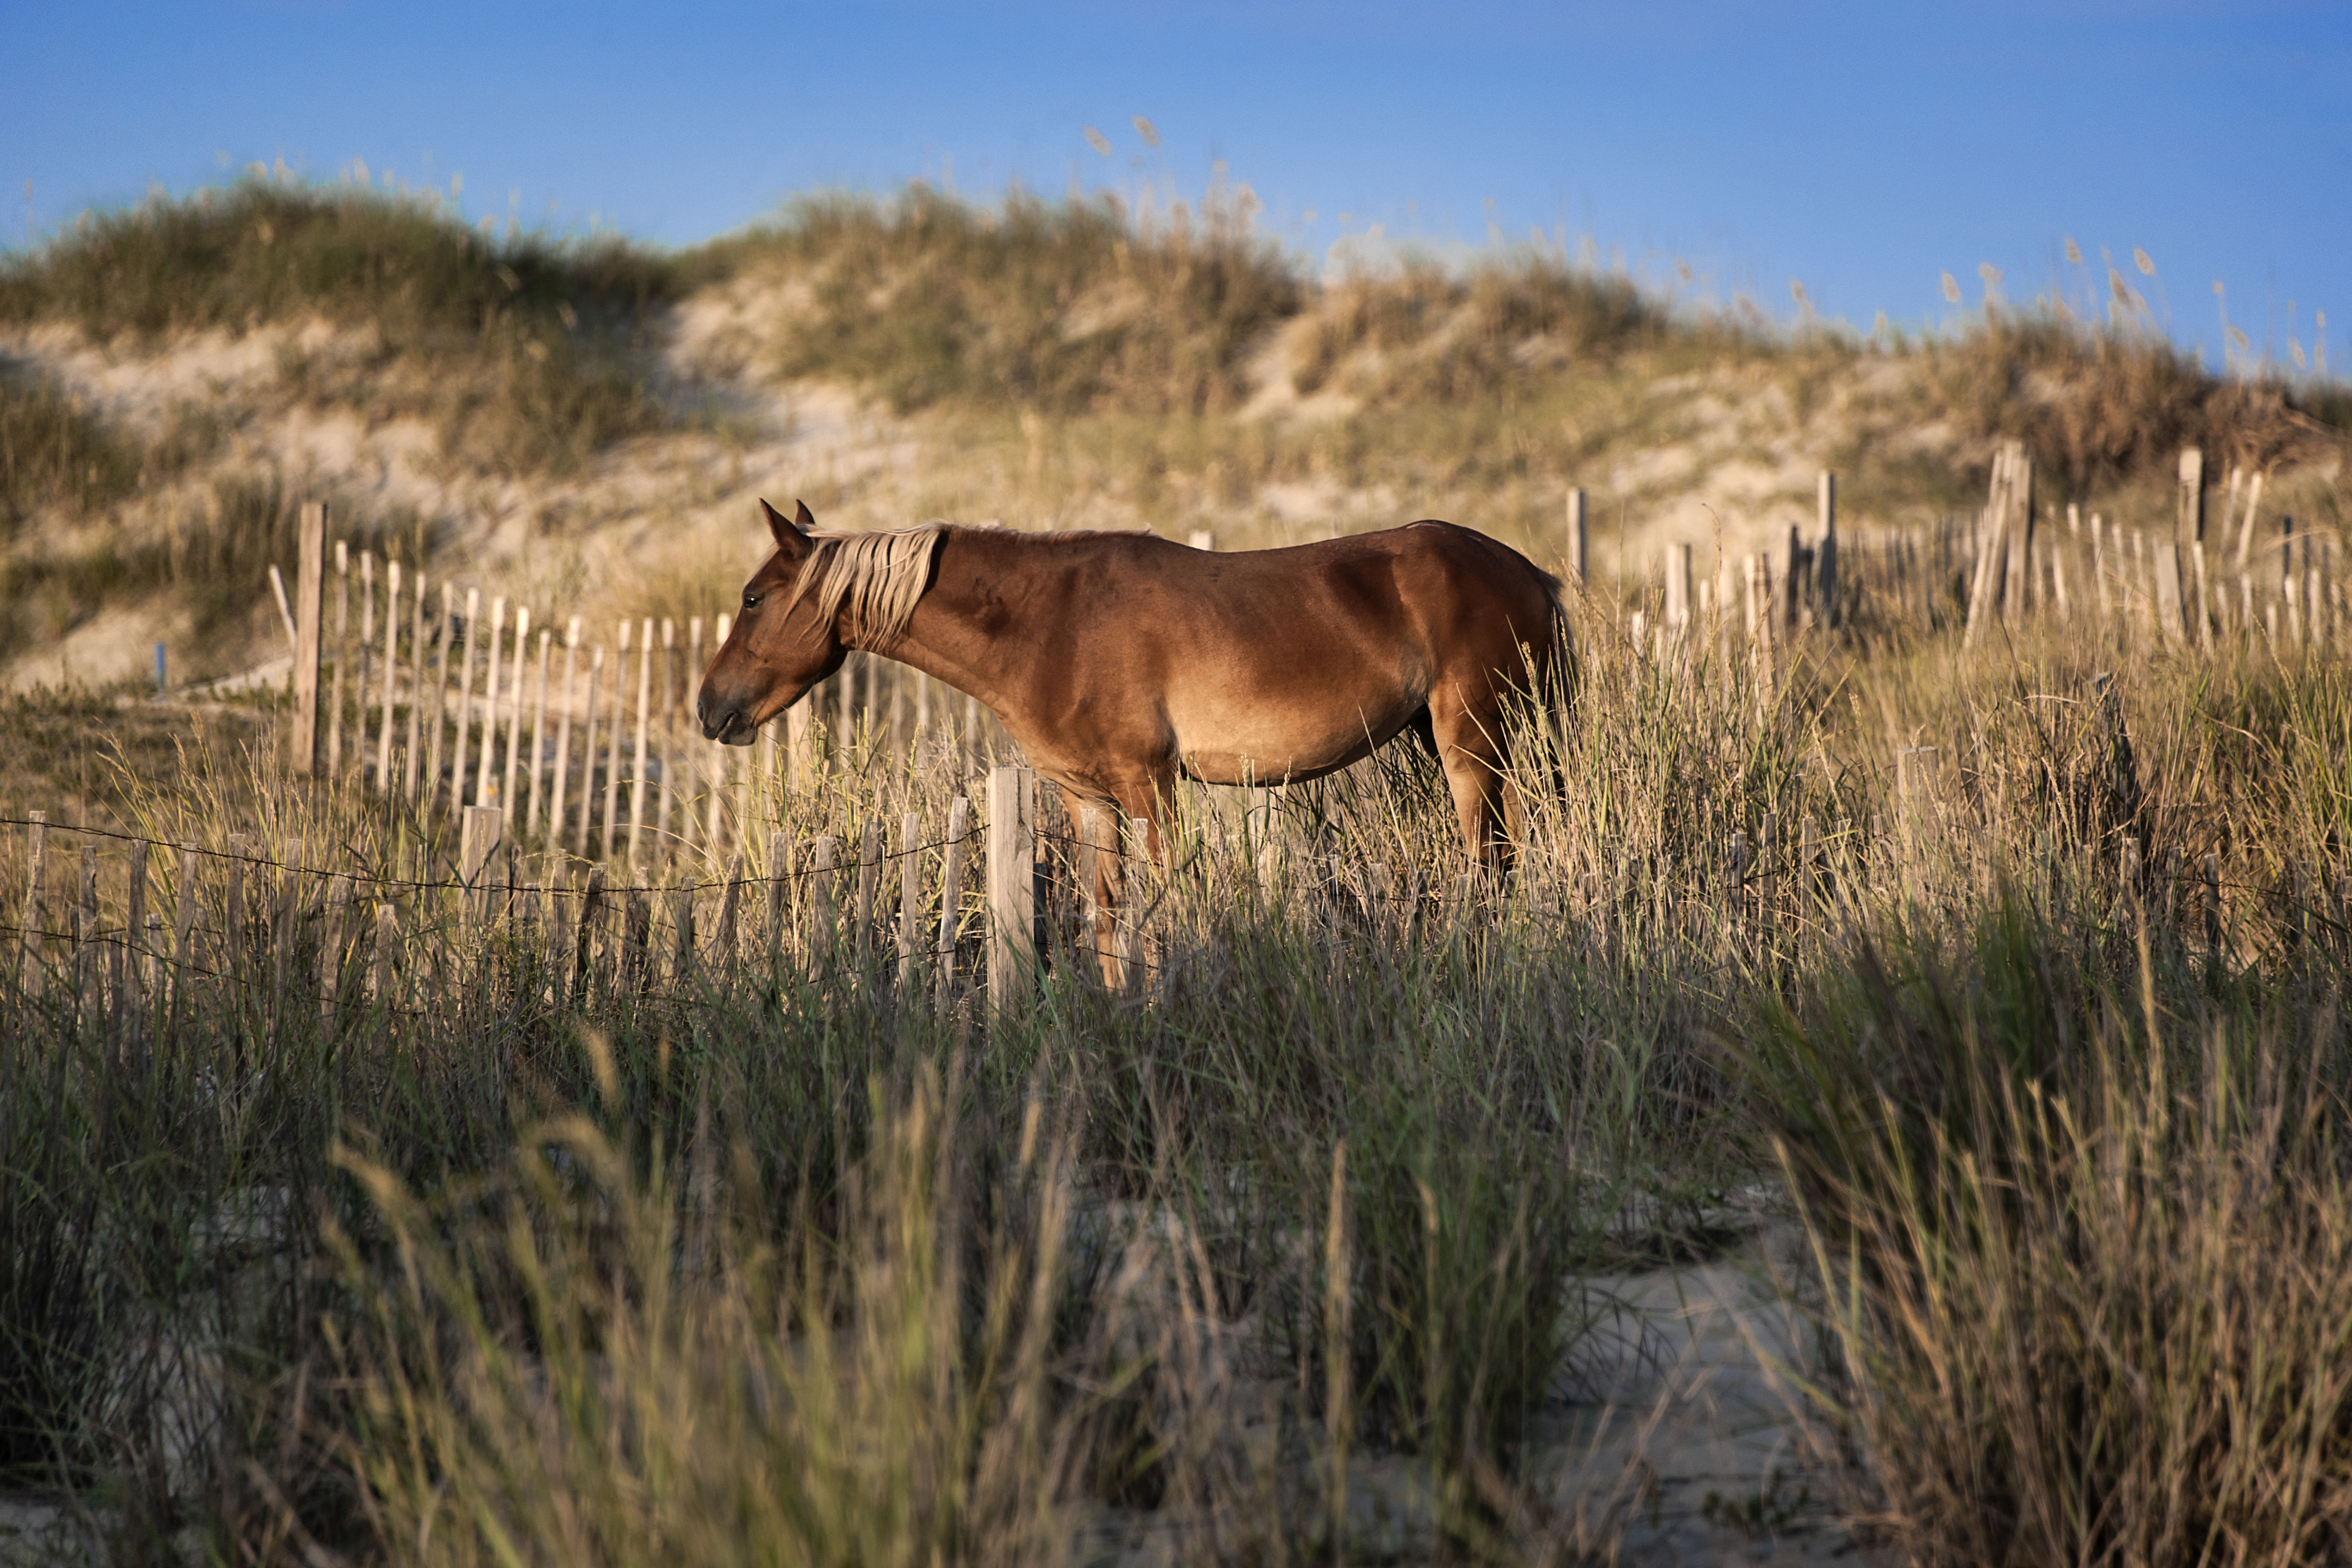 Guidelines for Visiting the Southeast's Beautiful Wild Horses